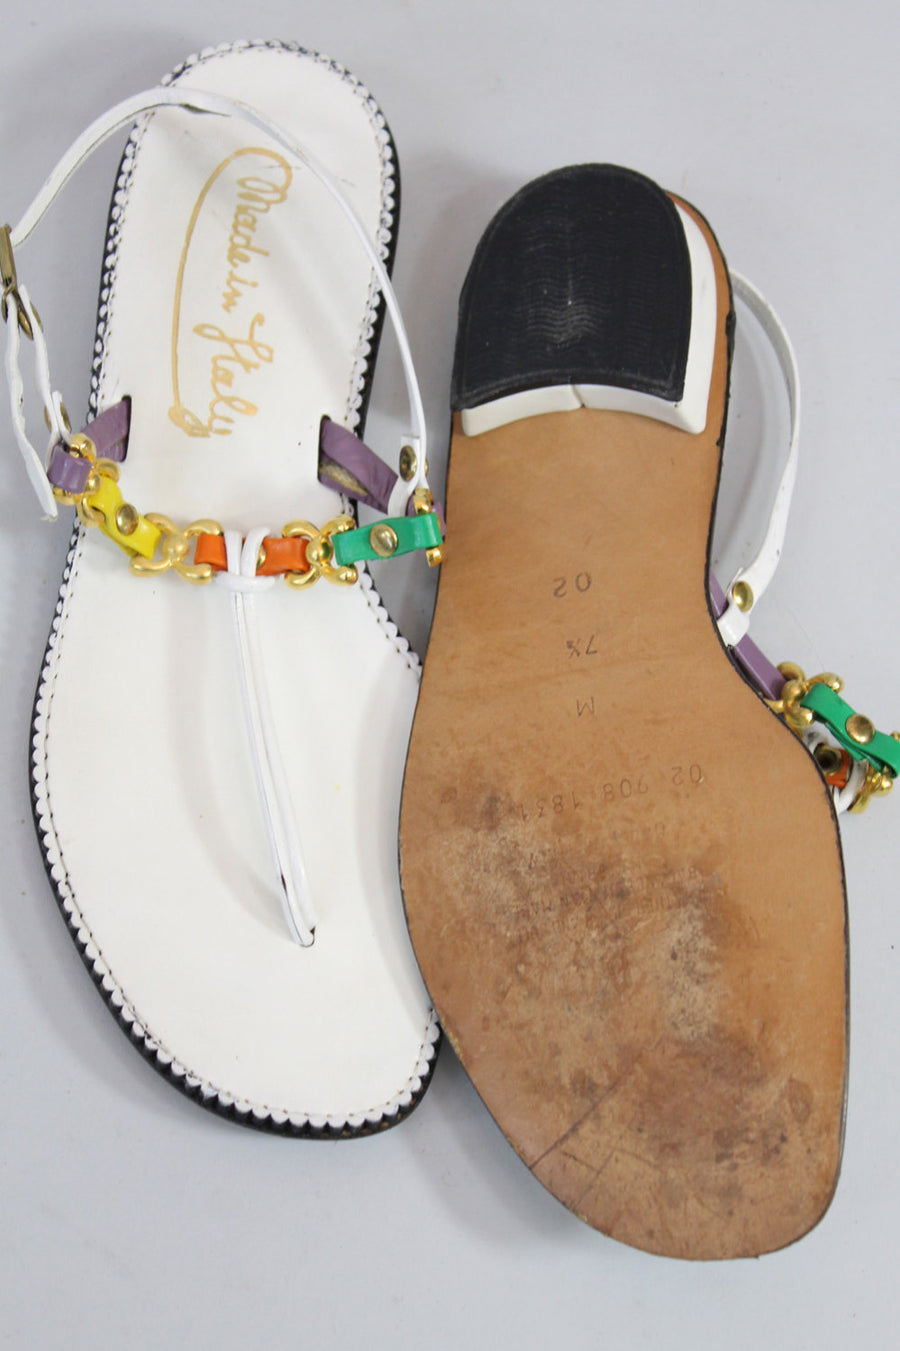 1970s Italian chain sandals size 7.5 us | vintage chain leather shoe